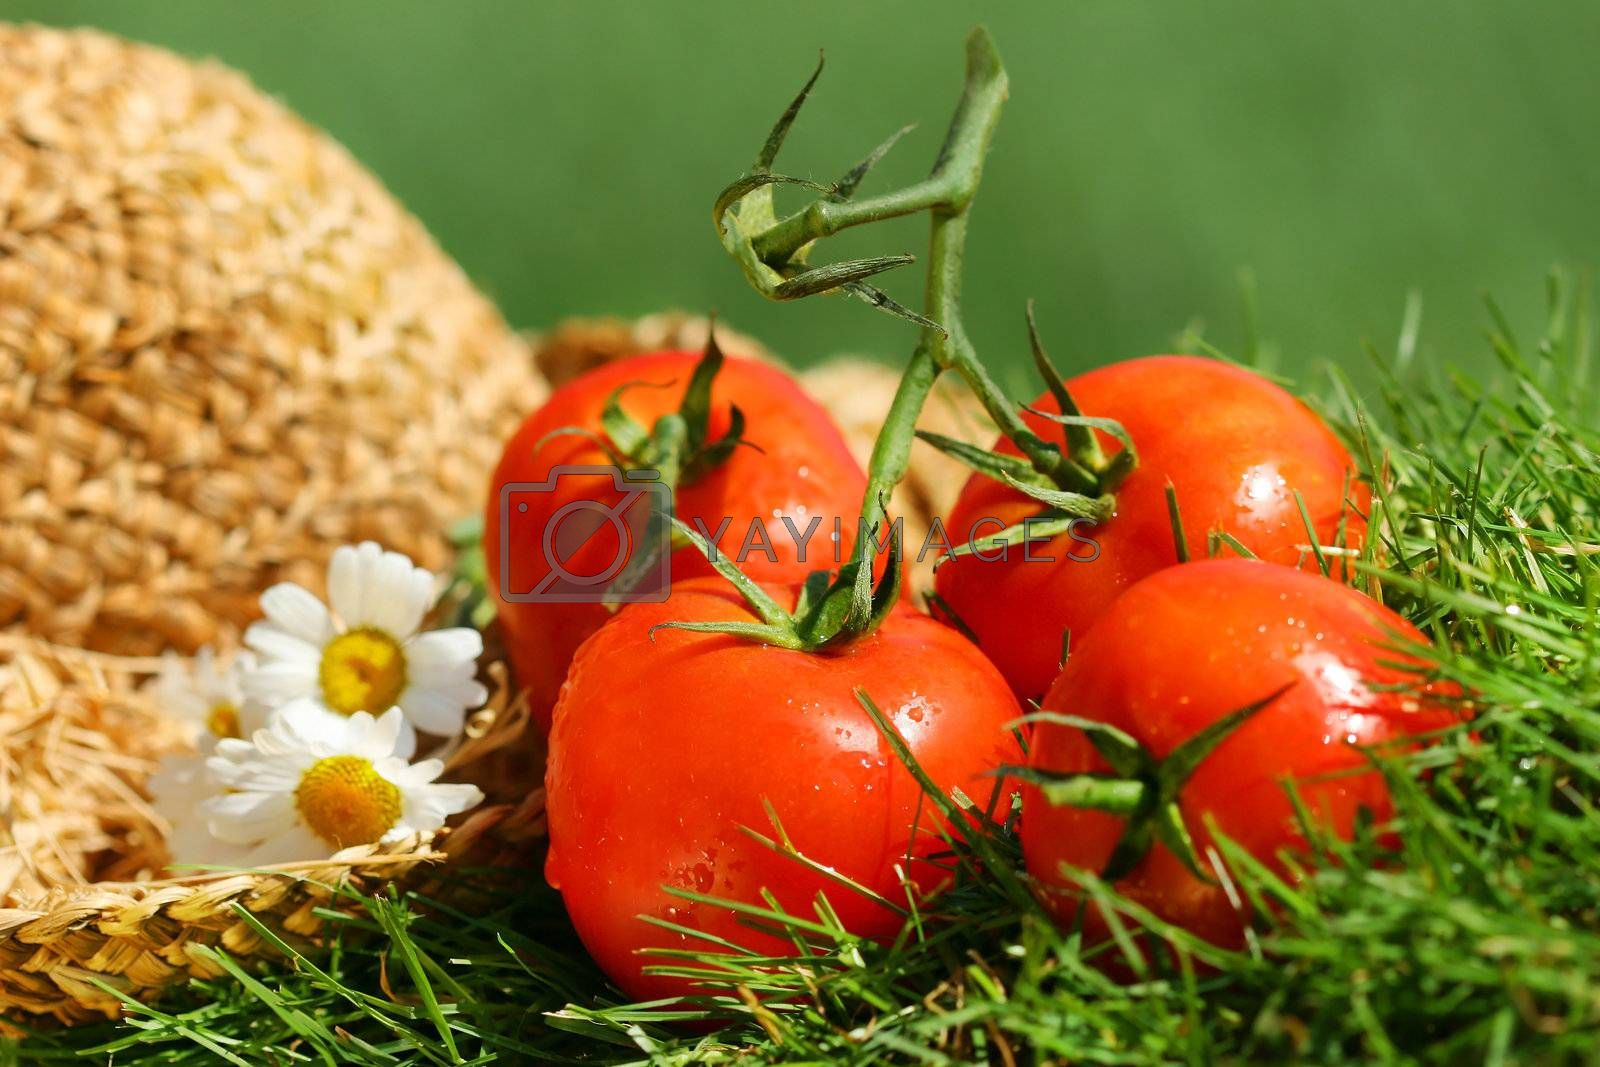 Summer tomatoes with straw hat